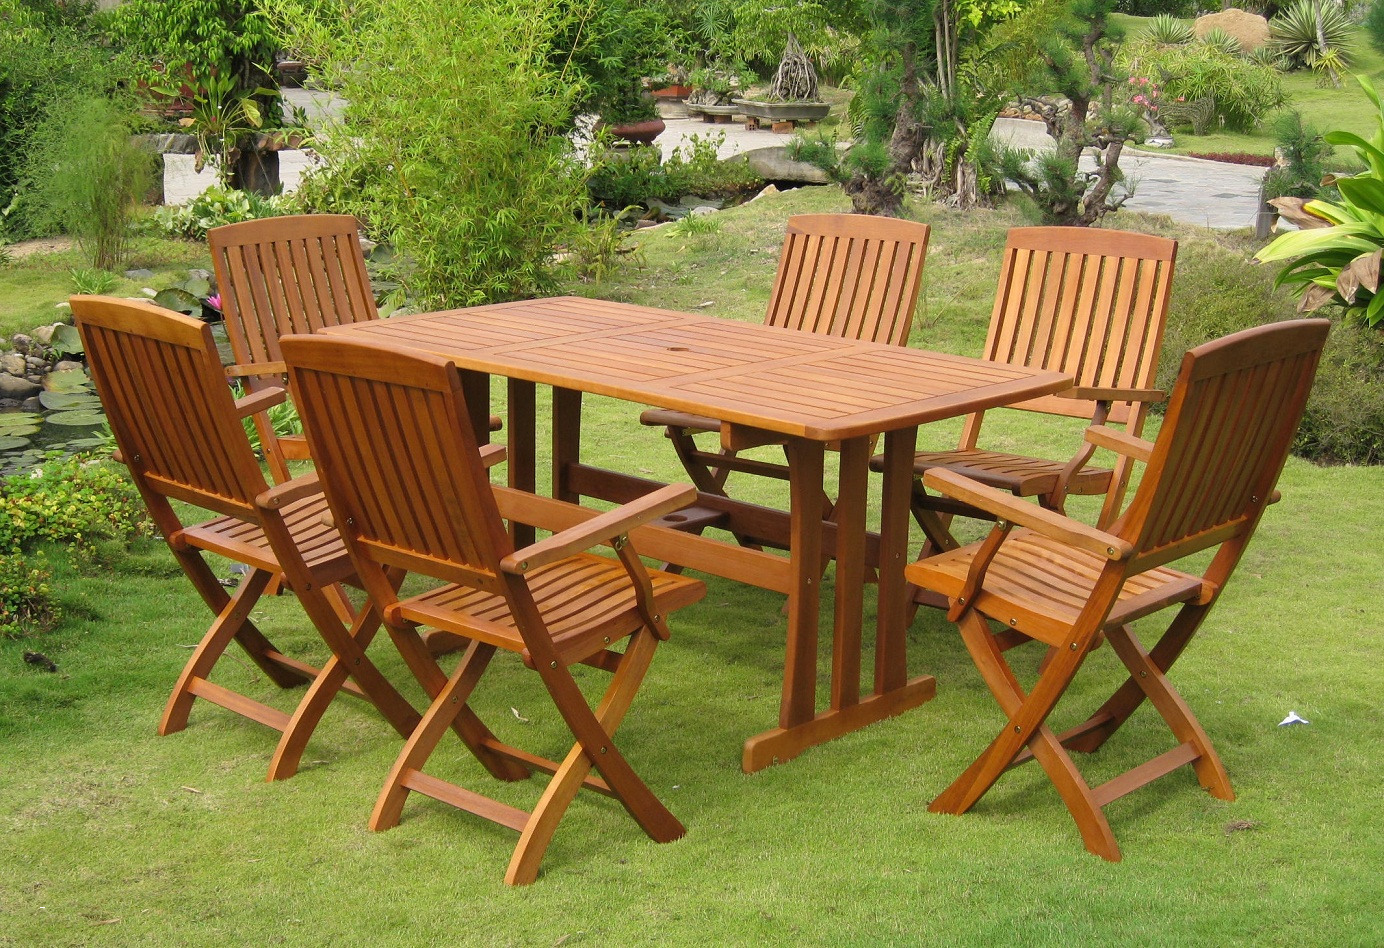 wooden patio furniture wood folding patio chairs best of wooden outdoor tables image teak sears ZHBHPYJ